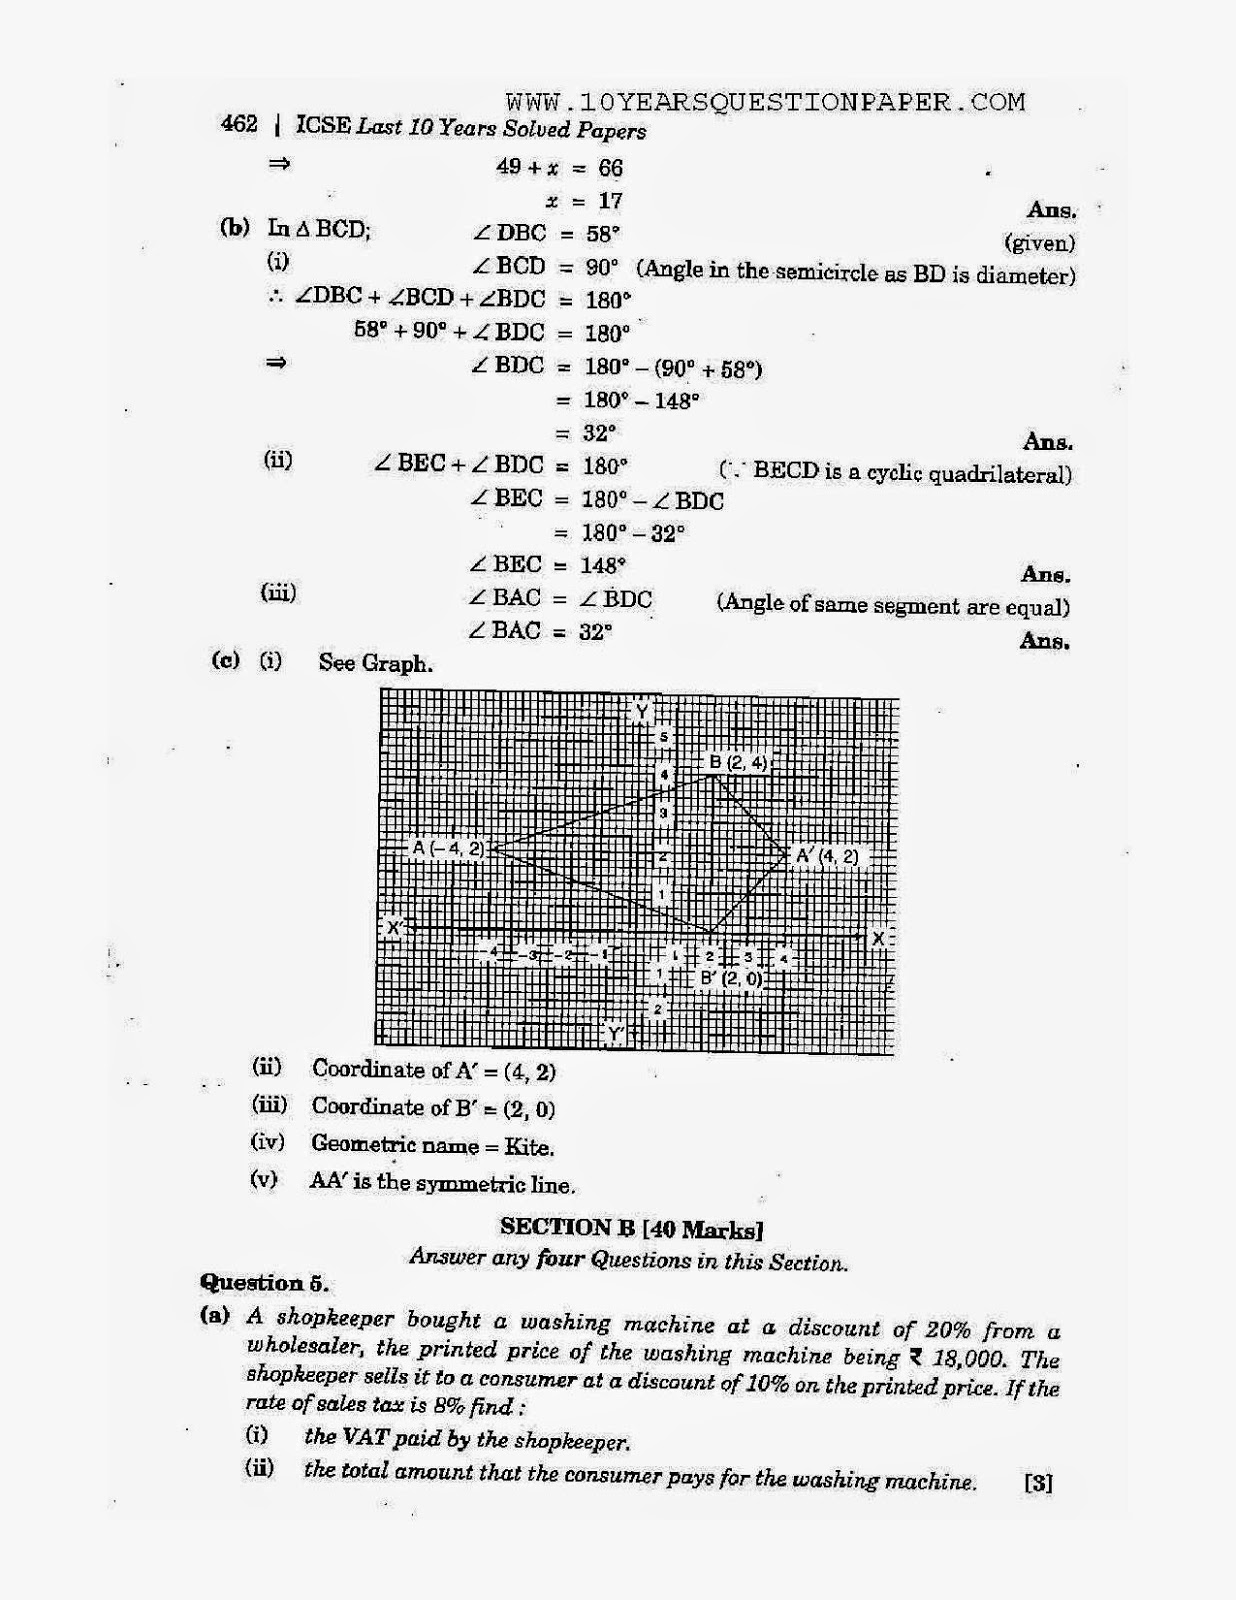 2008 icse mathematics question paper Learn math online mathematics website for icse & isc students for school students free math lessons solved icse & isc board papers sample problems solved.